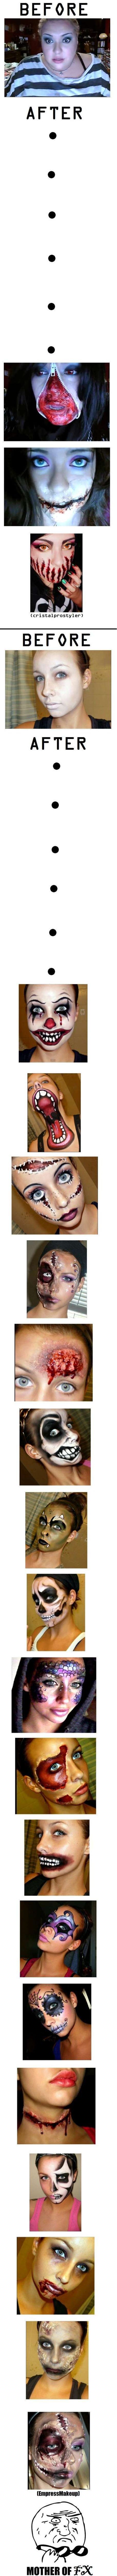 Amazing Makeup - Halloween